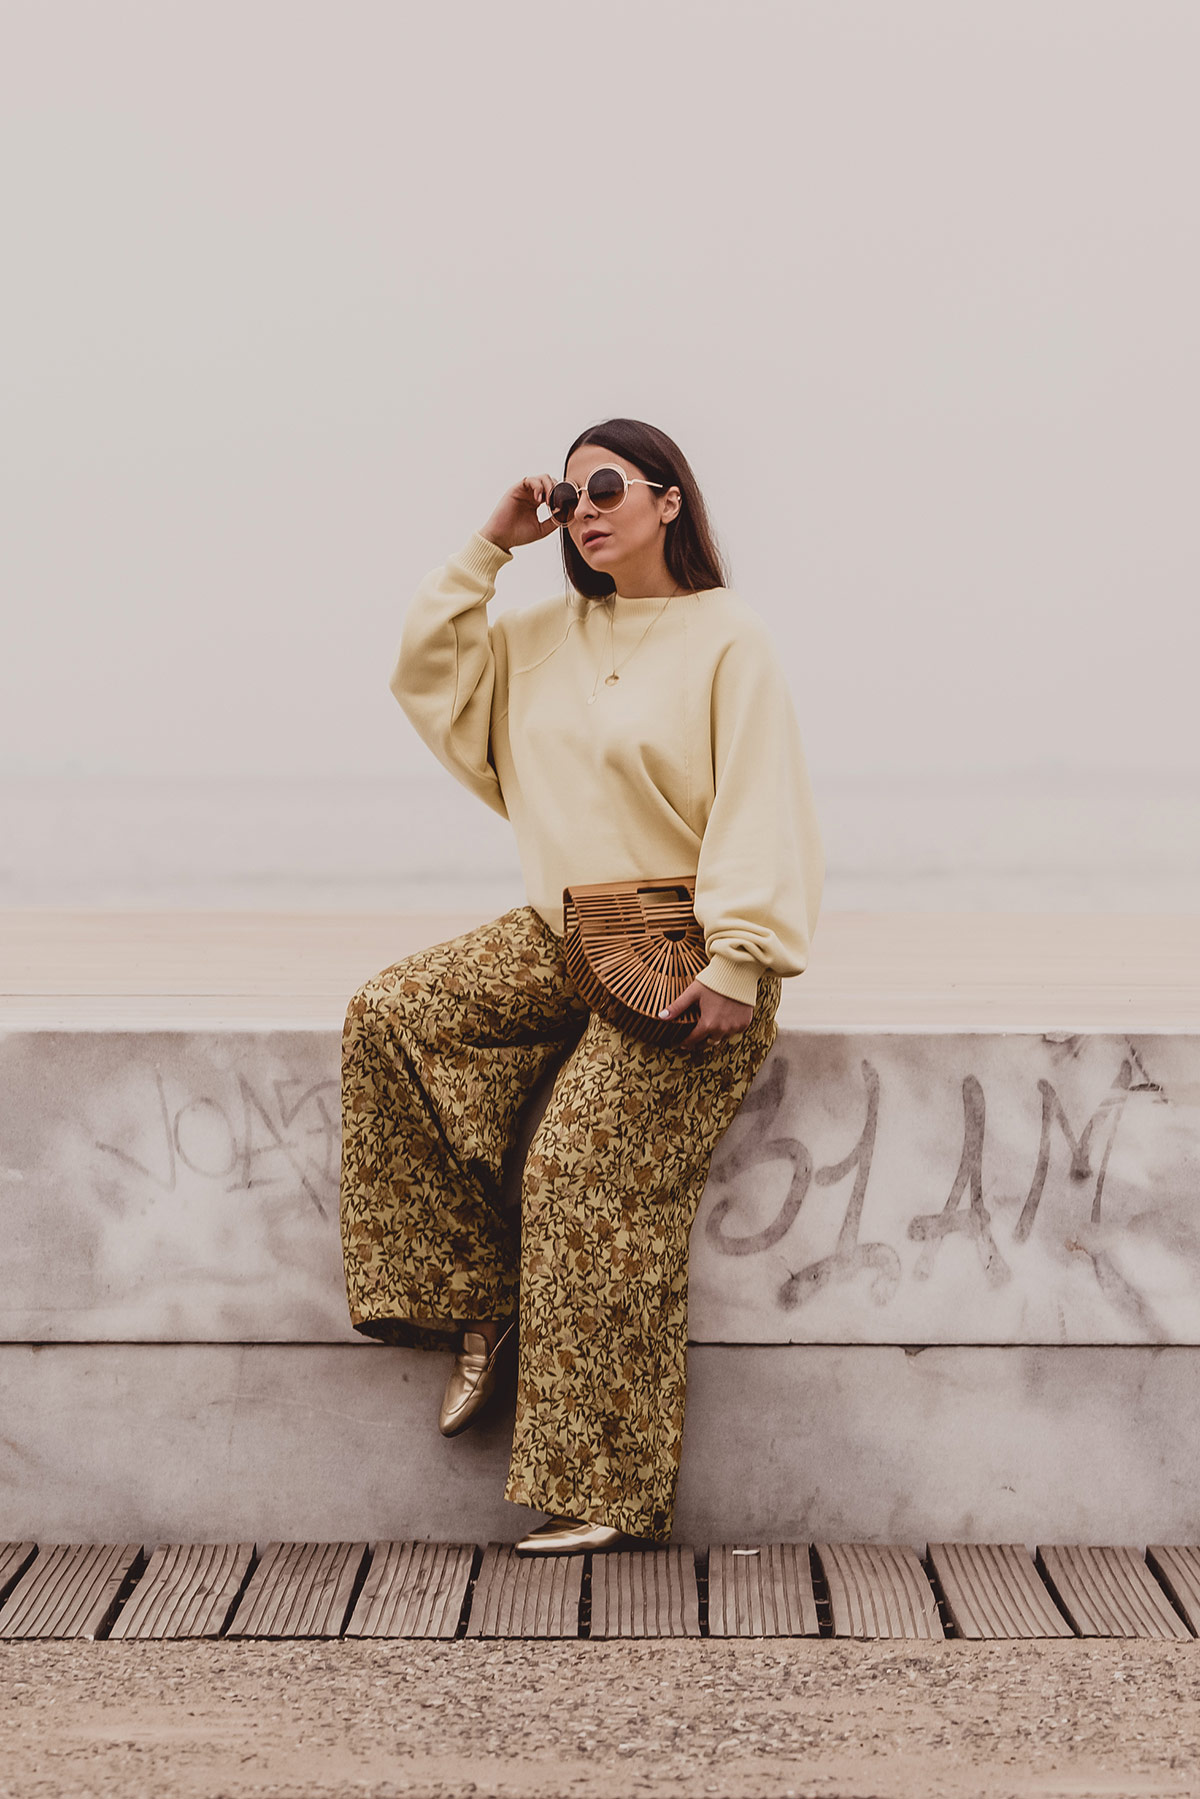 yellow trend Spring Summer 2018 - yellow outfit by Stella Asteria - Fashion & Style Blogger wearing yellow floral pants, yellow sweatshirt, Cult Gaia bag, and Chloé sunglasses